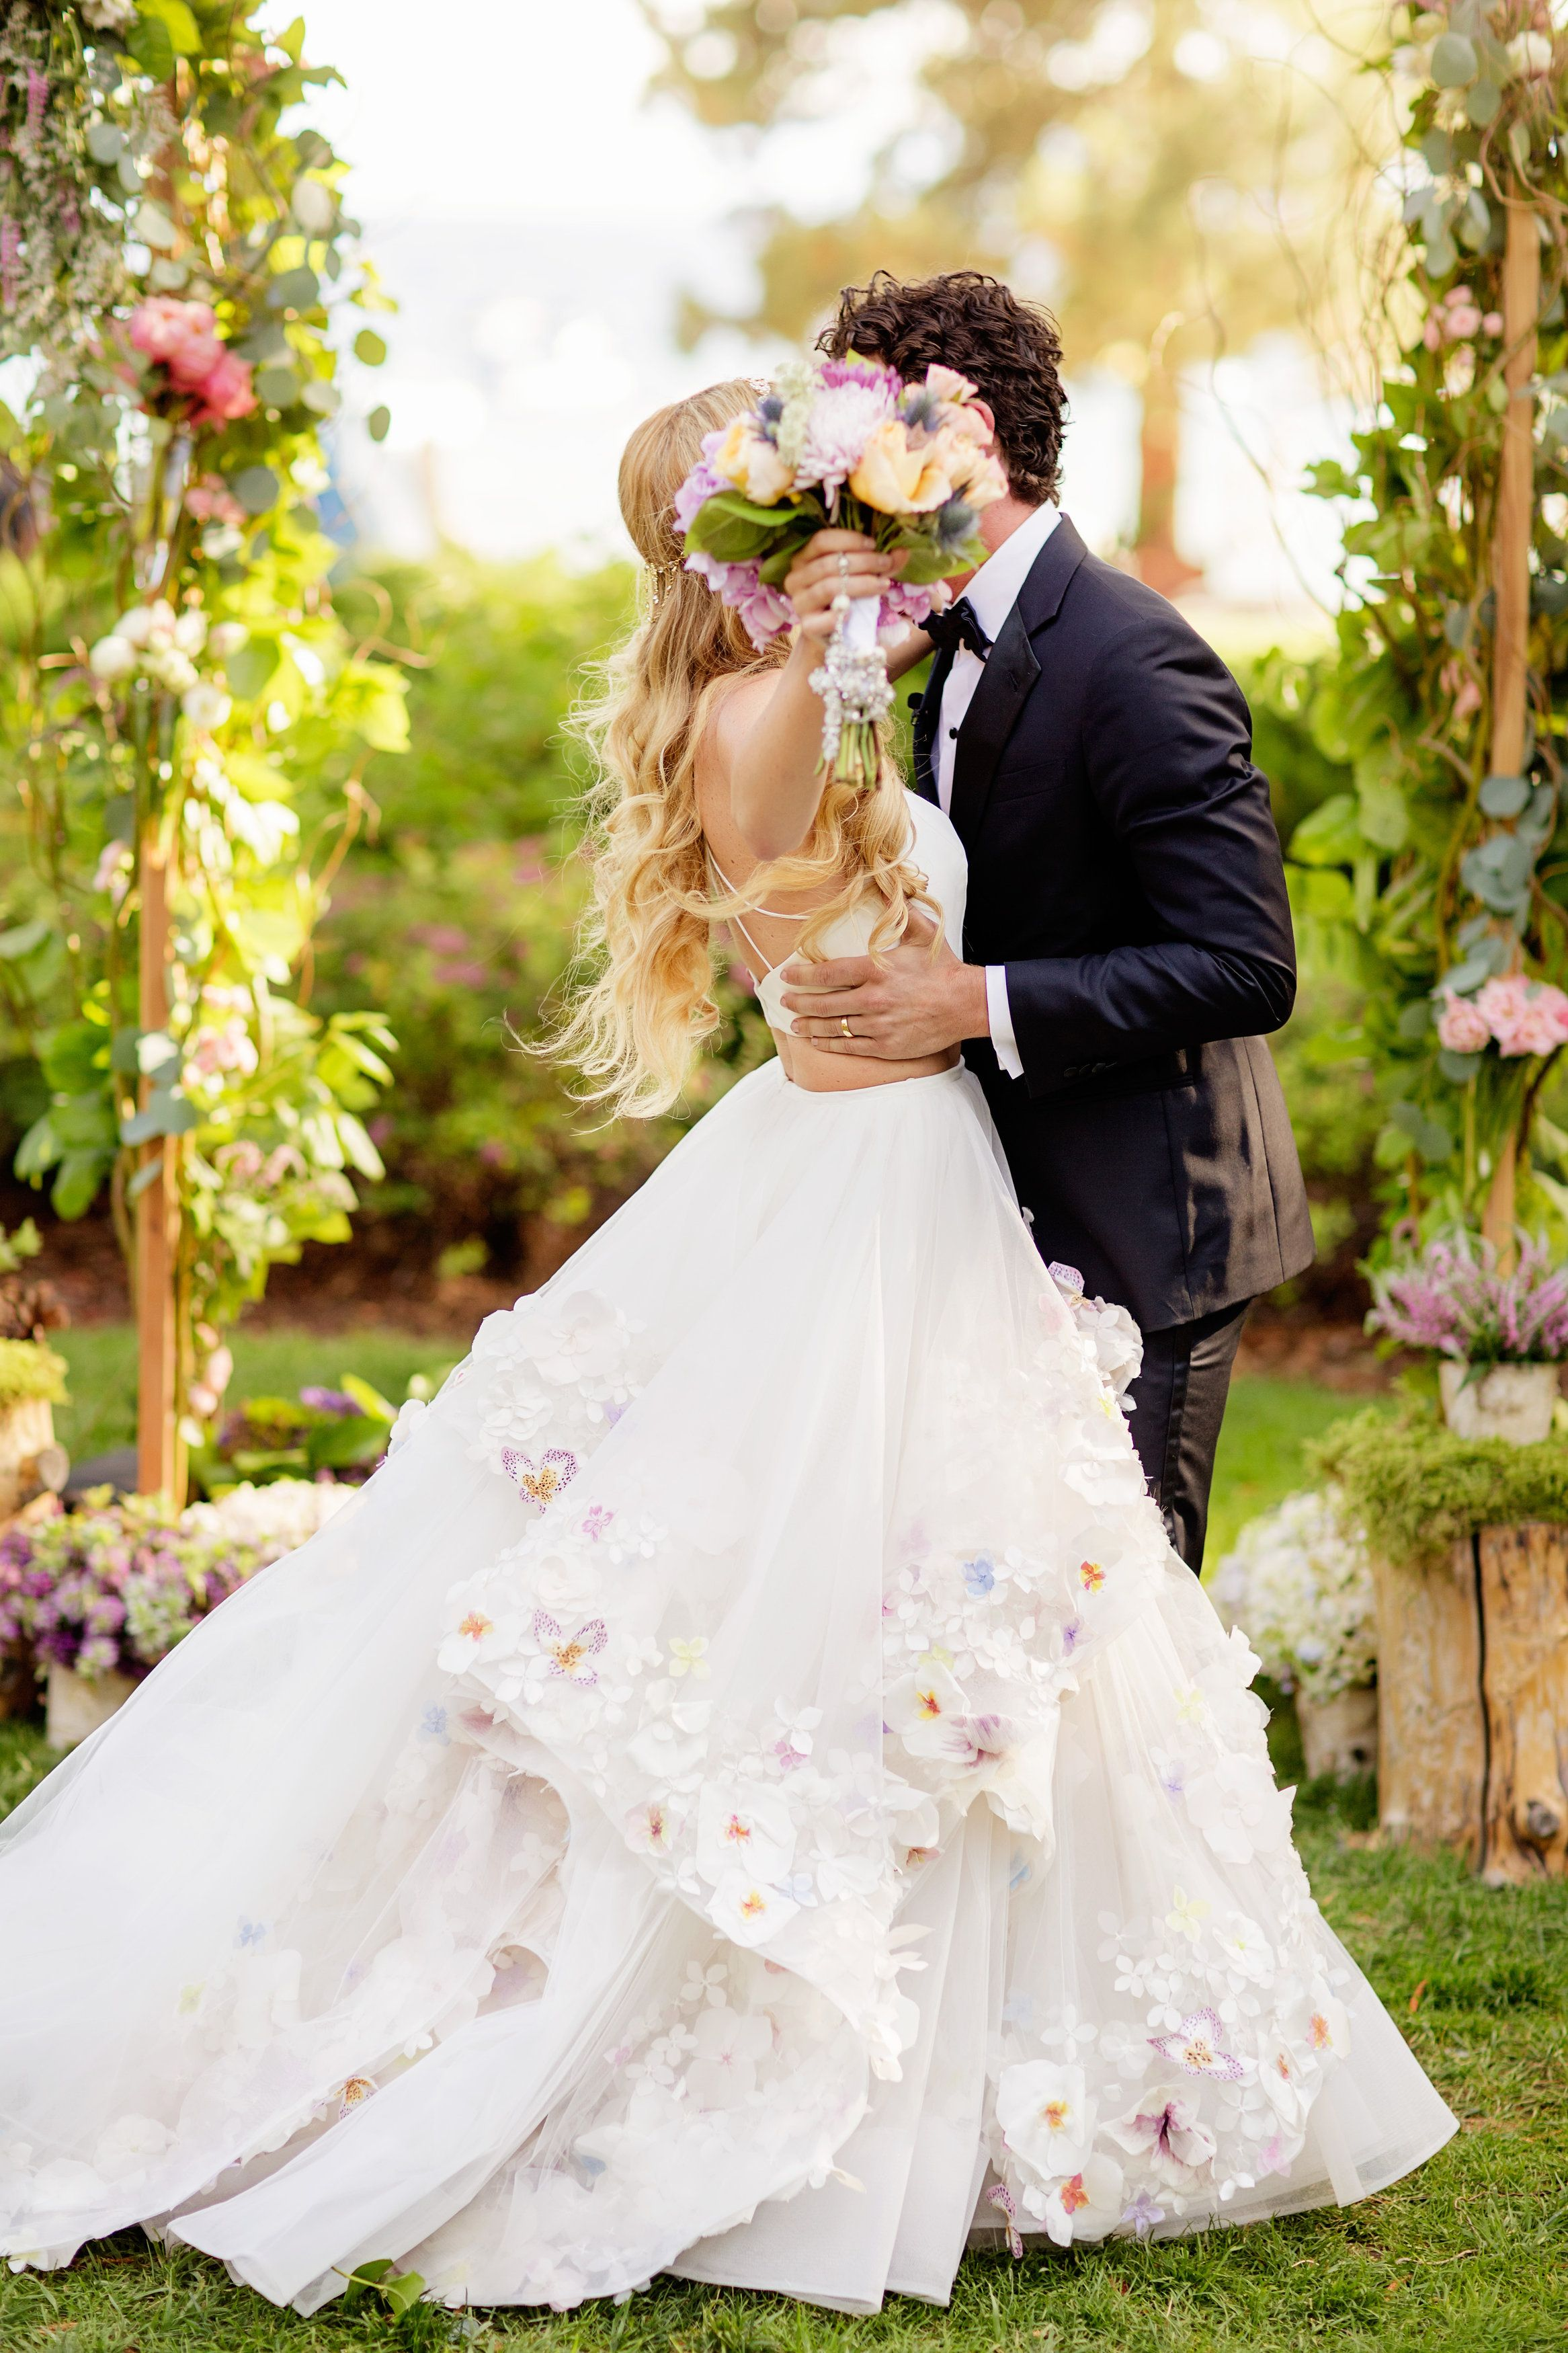 widding dress